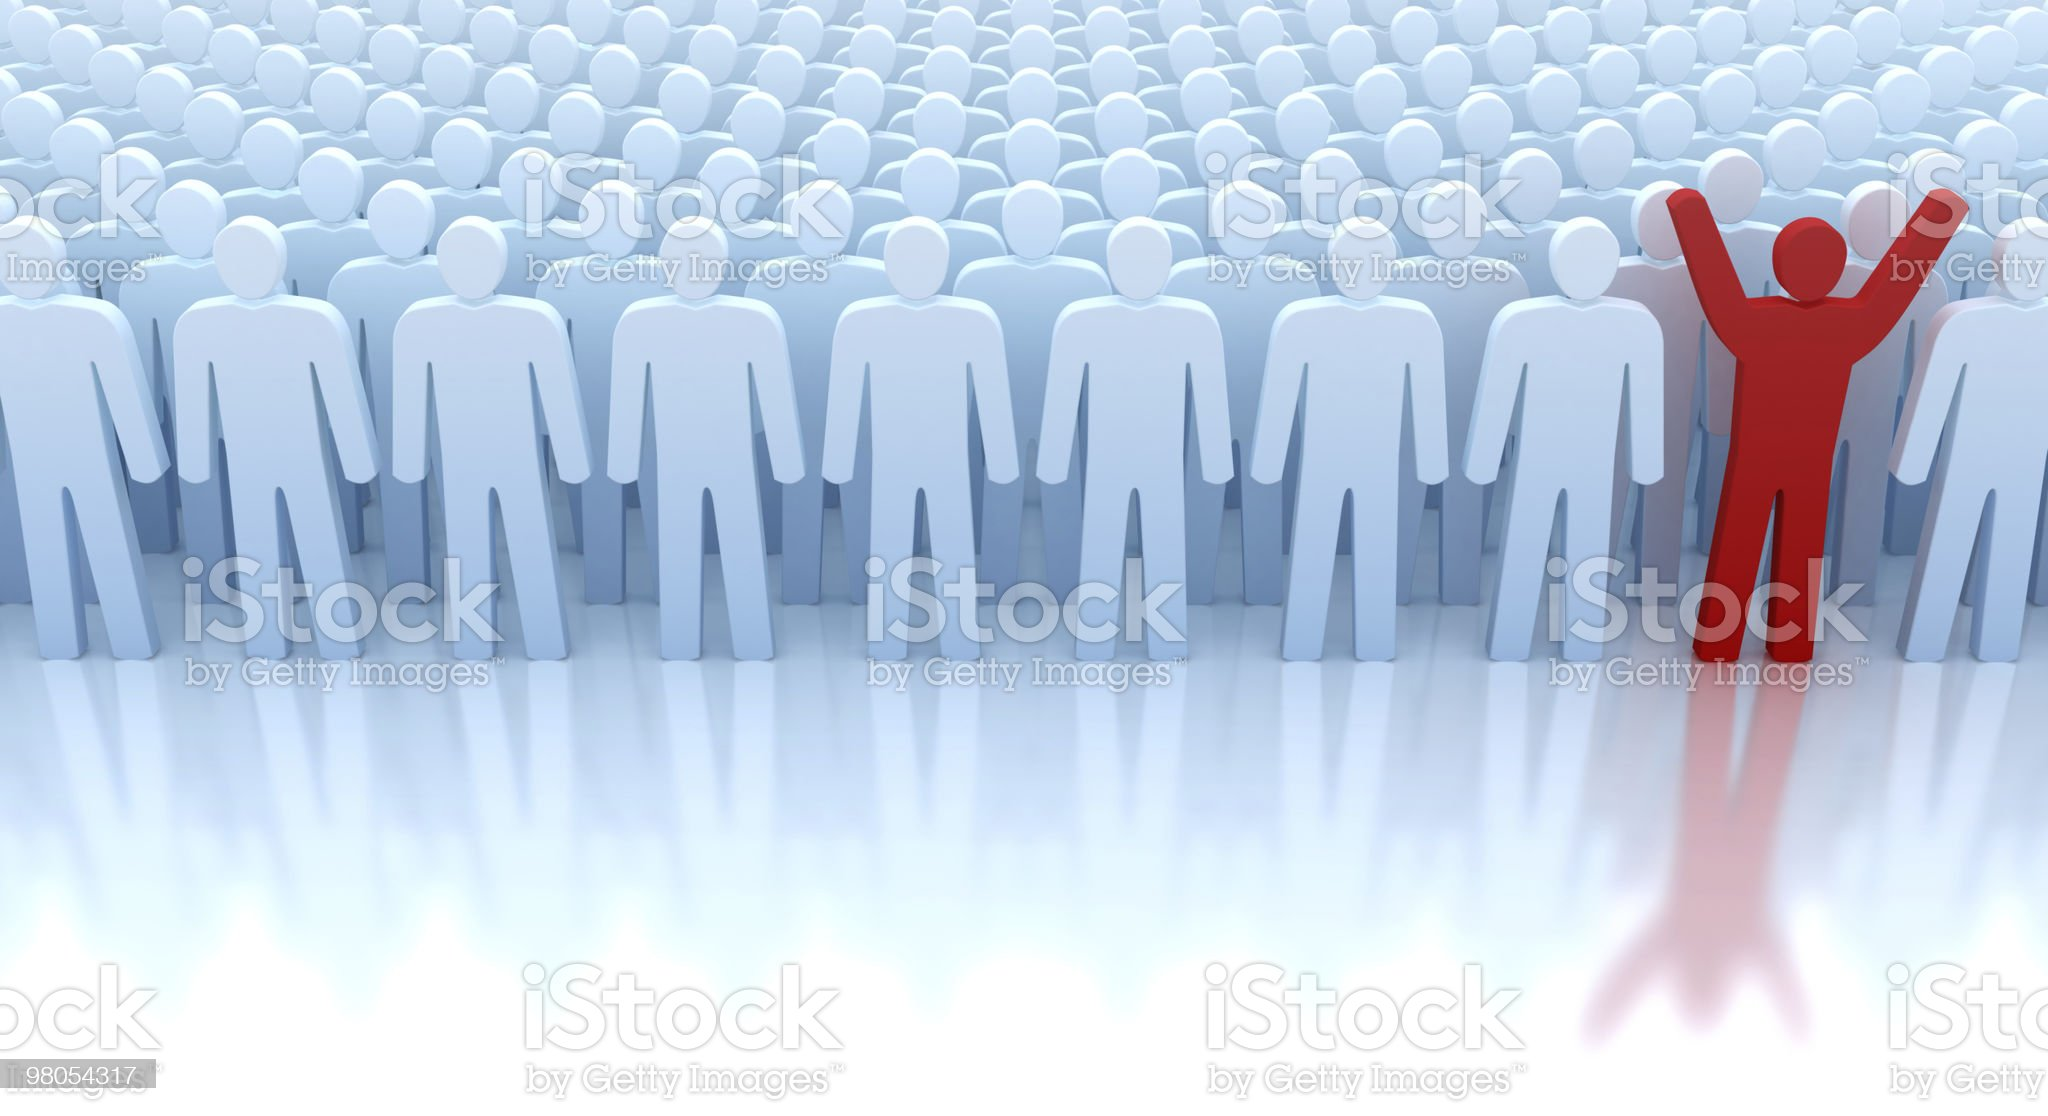 Only one winner from the crowd royalty-free stock photo